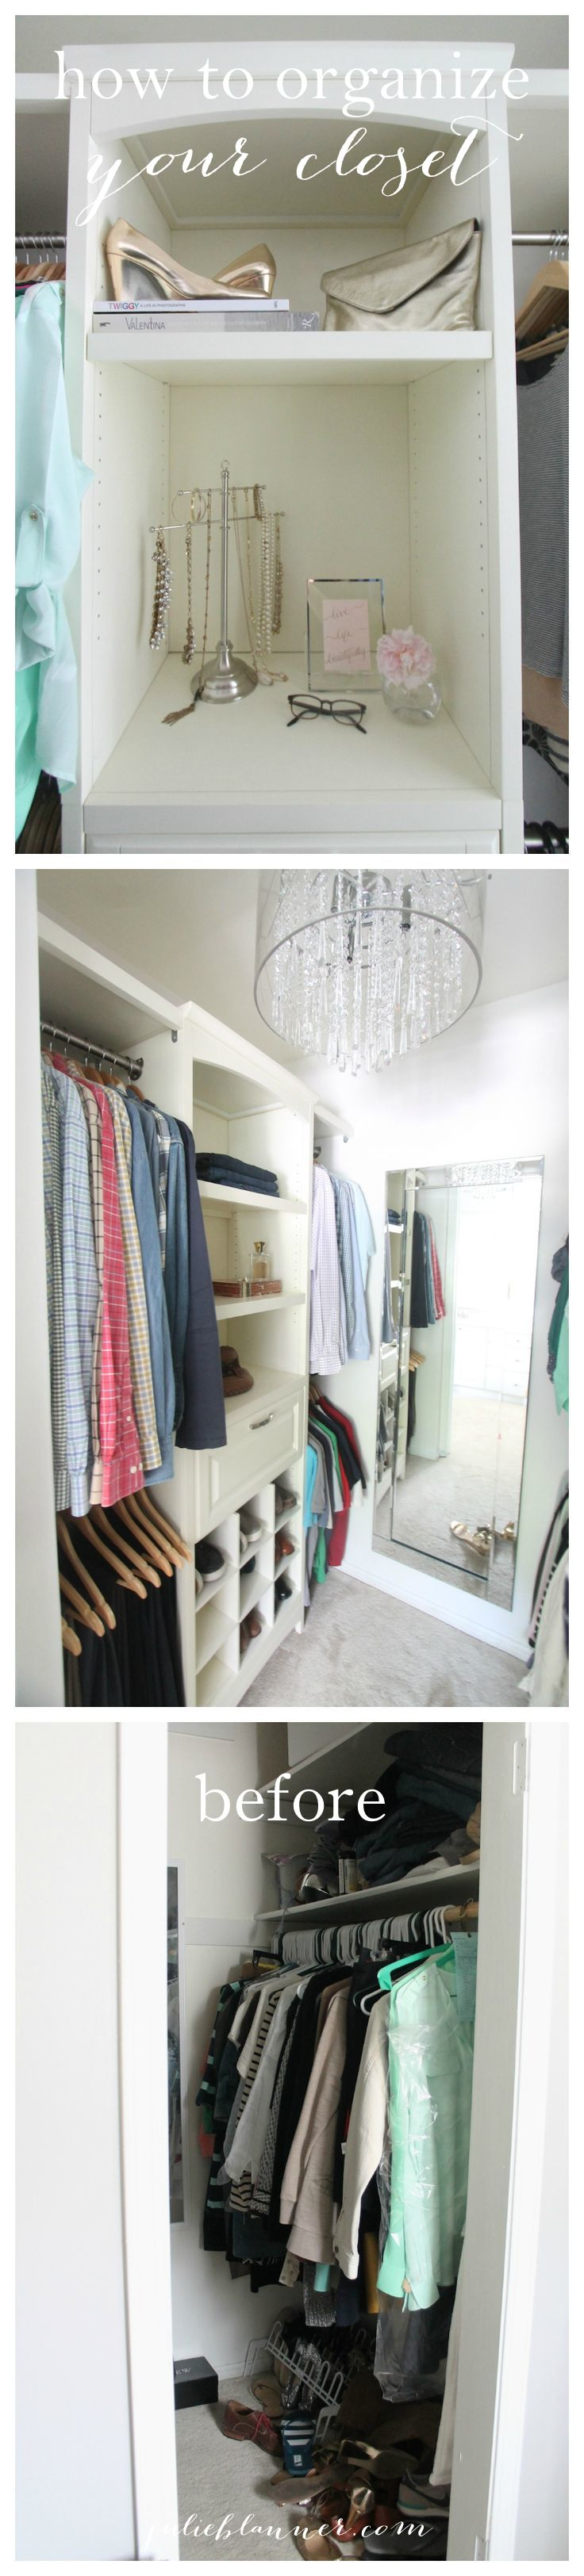 Follow These Simple And Easy Steps To Unclutter Your Closet